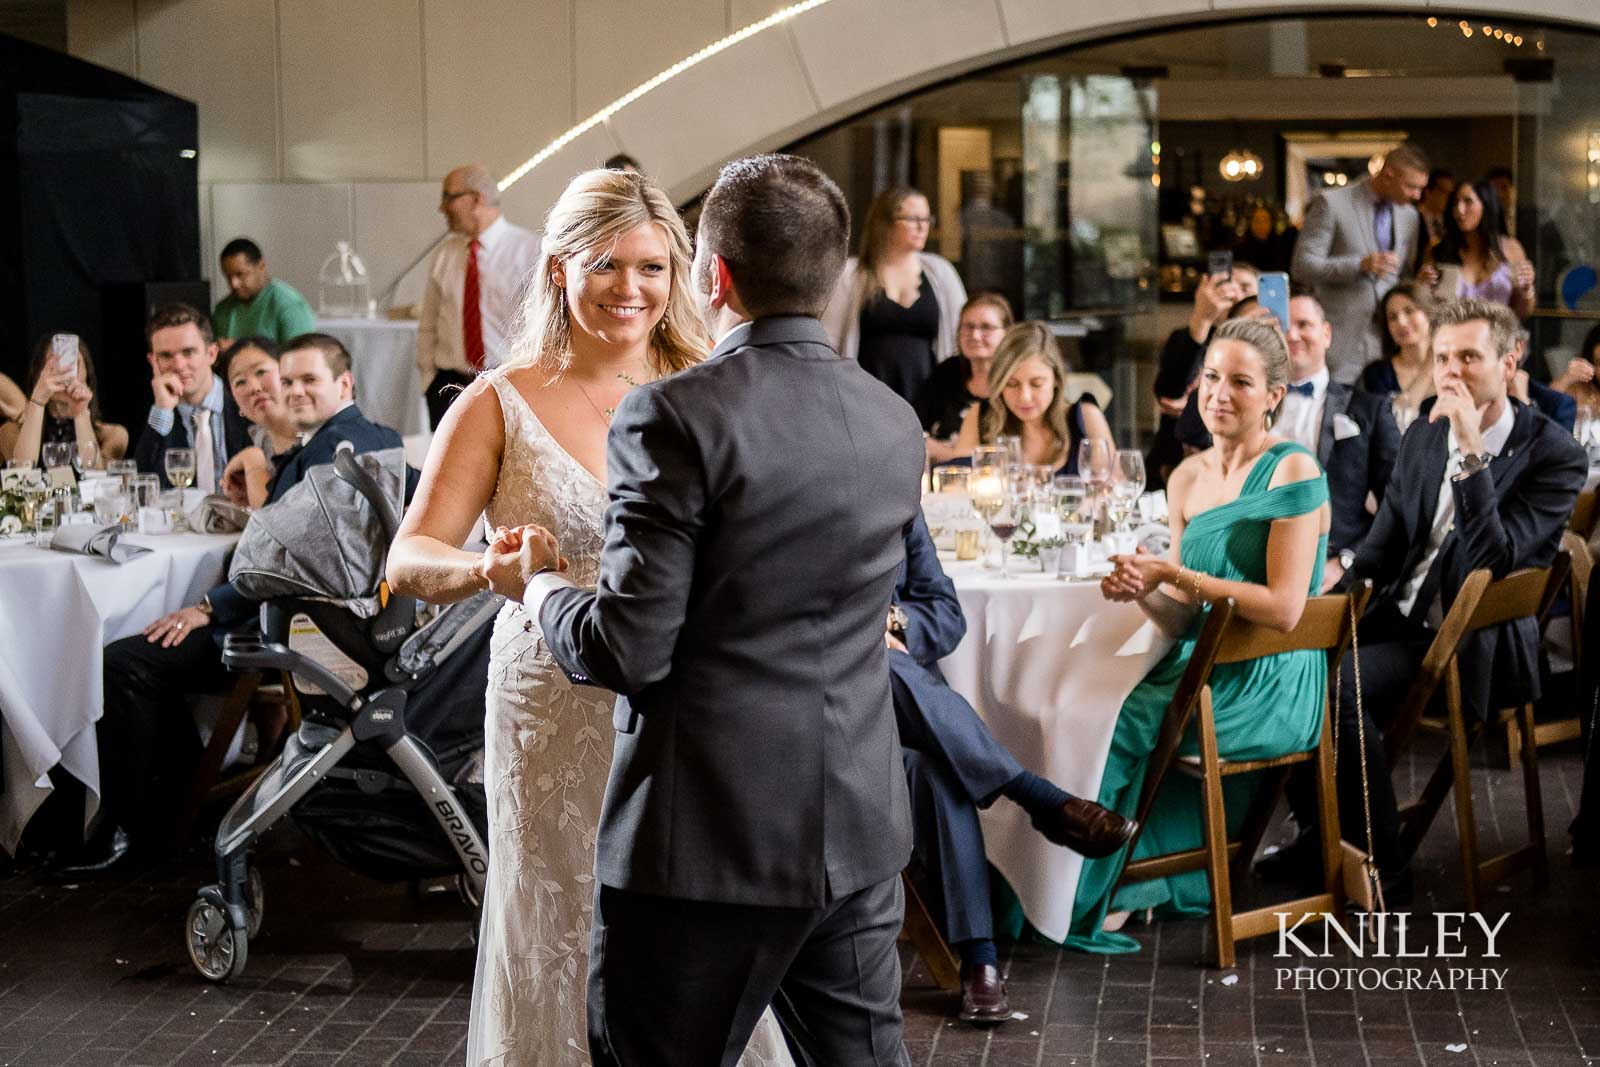 62-Max-of-Eastman-Wedding-and-Reception-Rochester-NY-Kniley-Photography.jpg